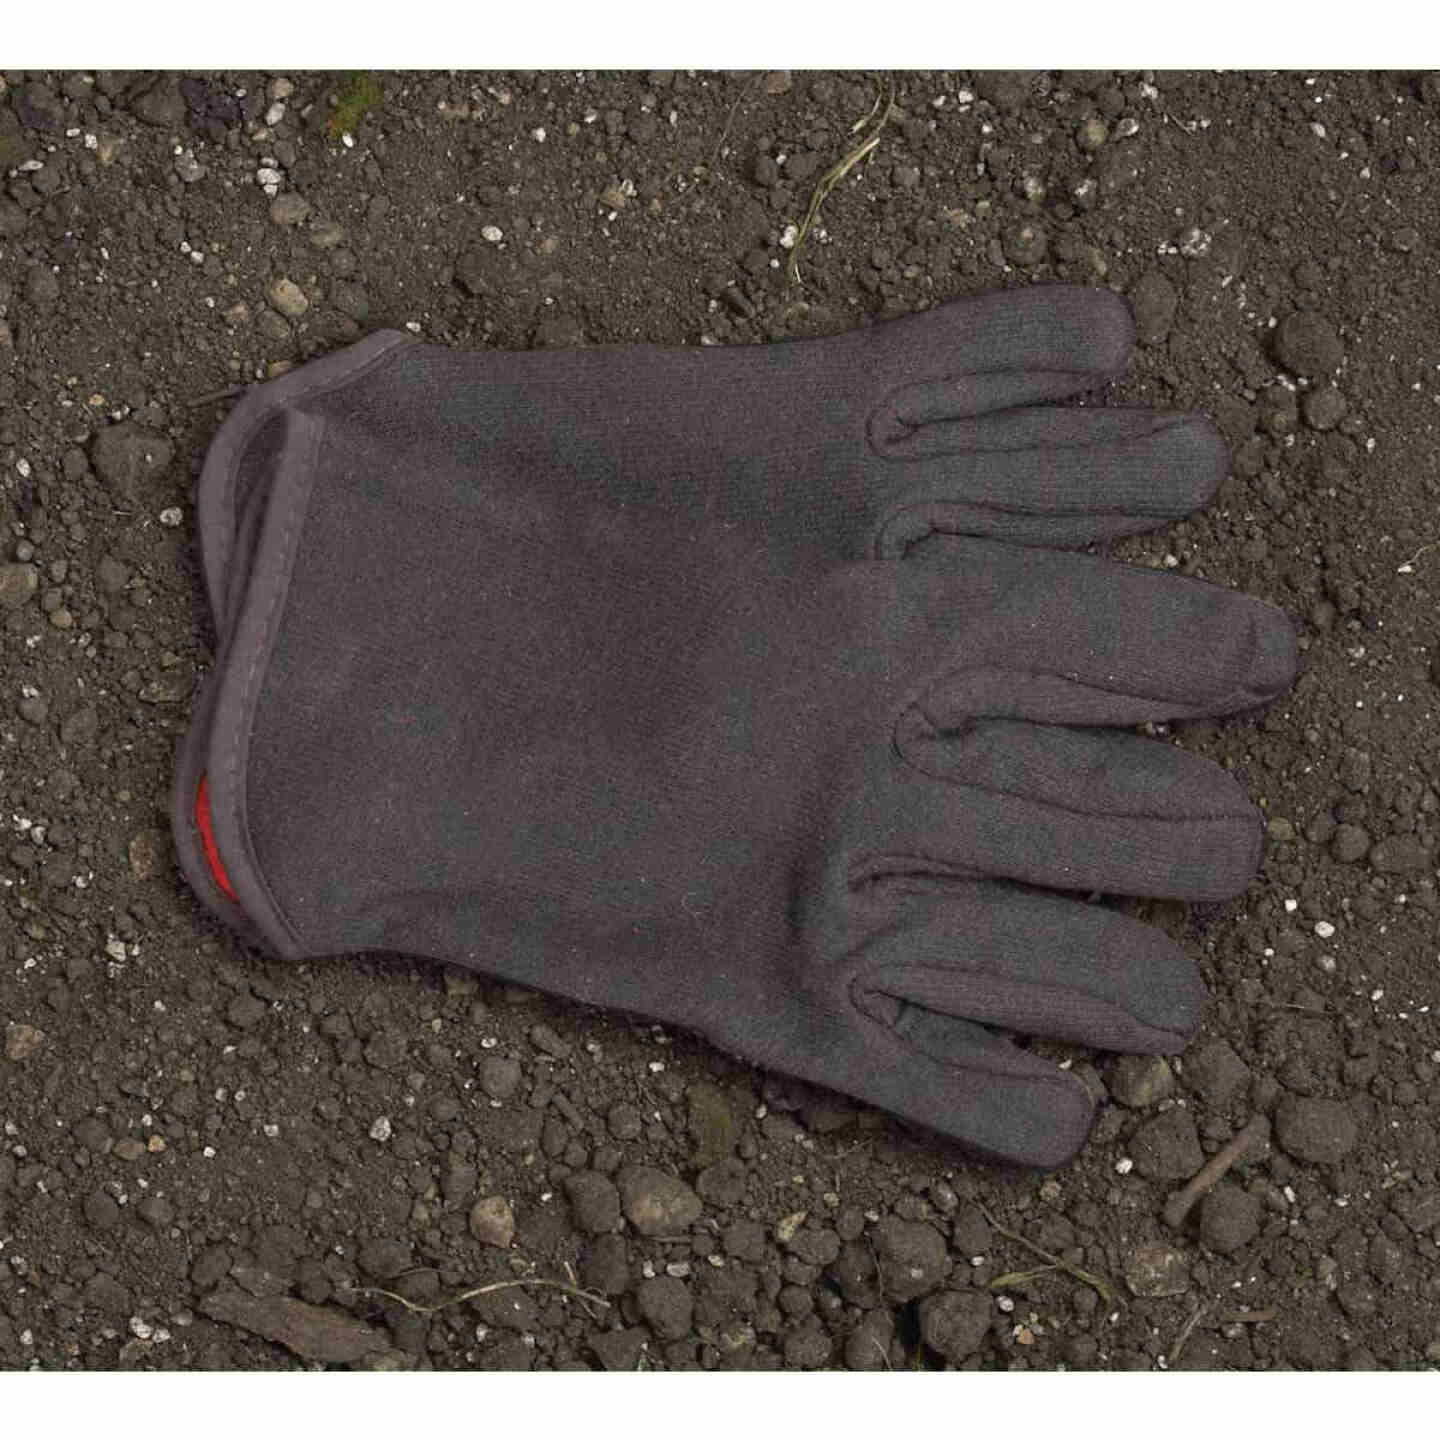 Do it Men's Large Lined Jersey Work Glove Image 2